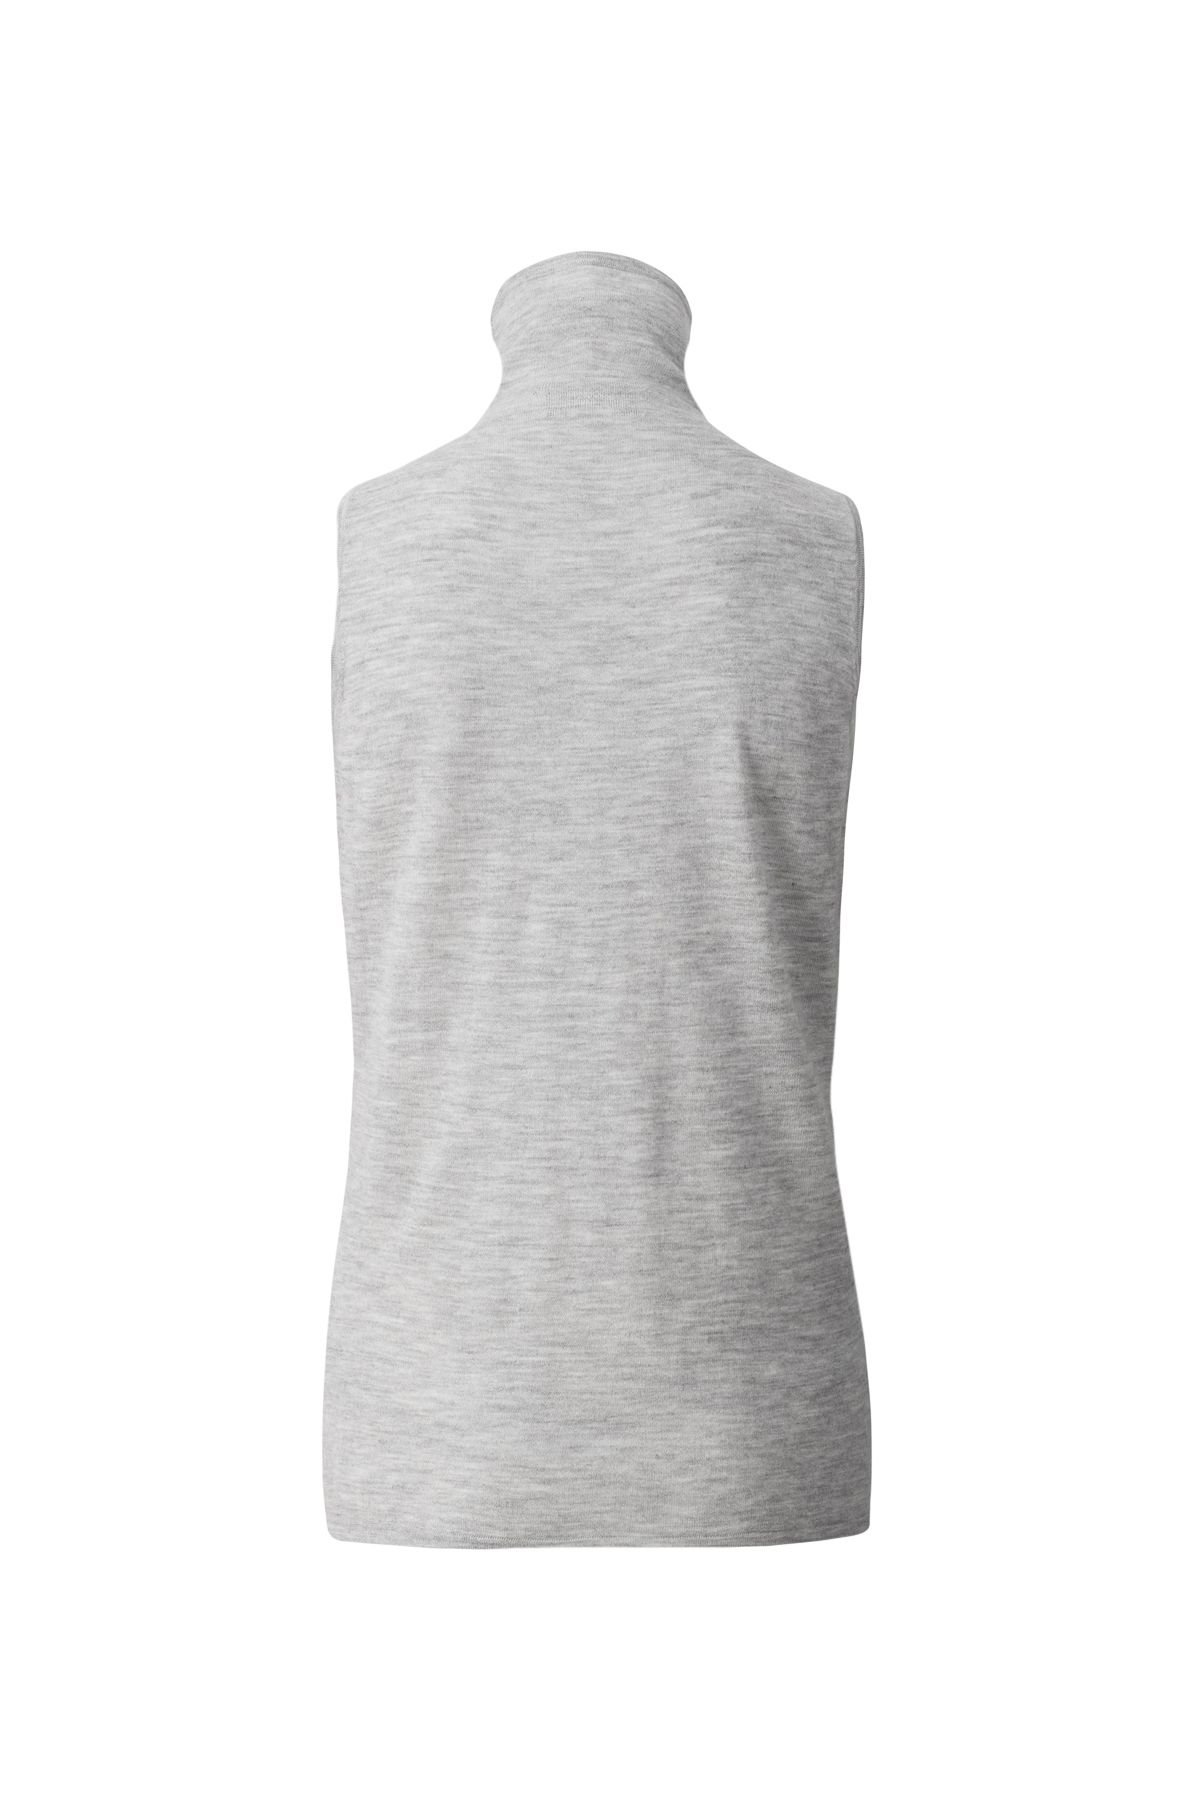 The Palermo grey pure cashmere rollneck sleeveless sweater